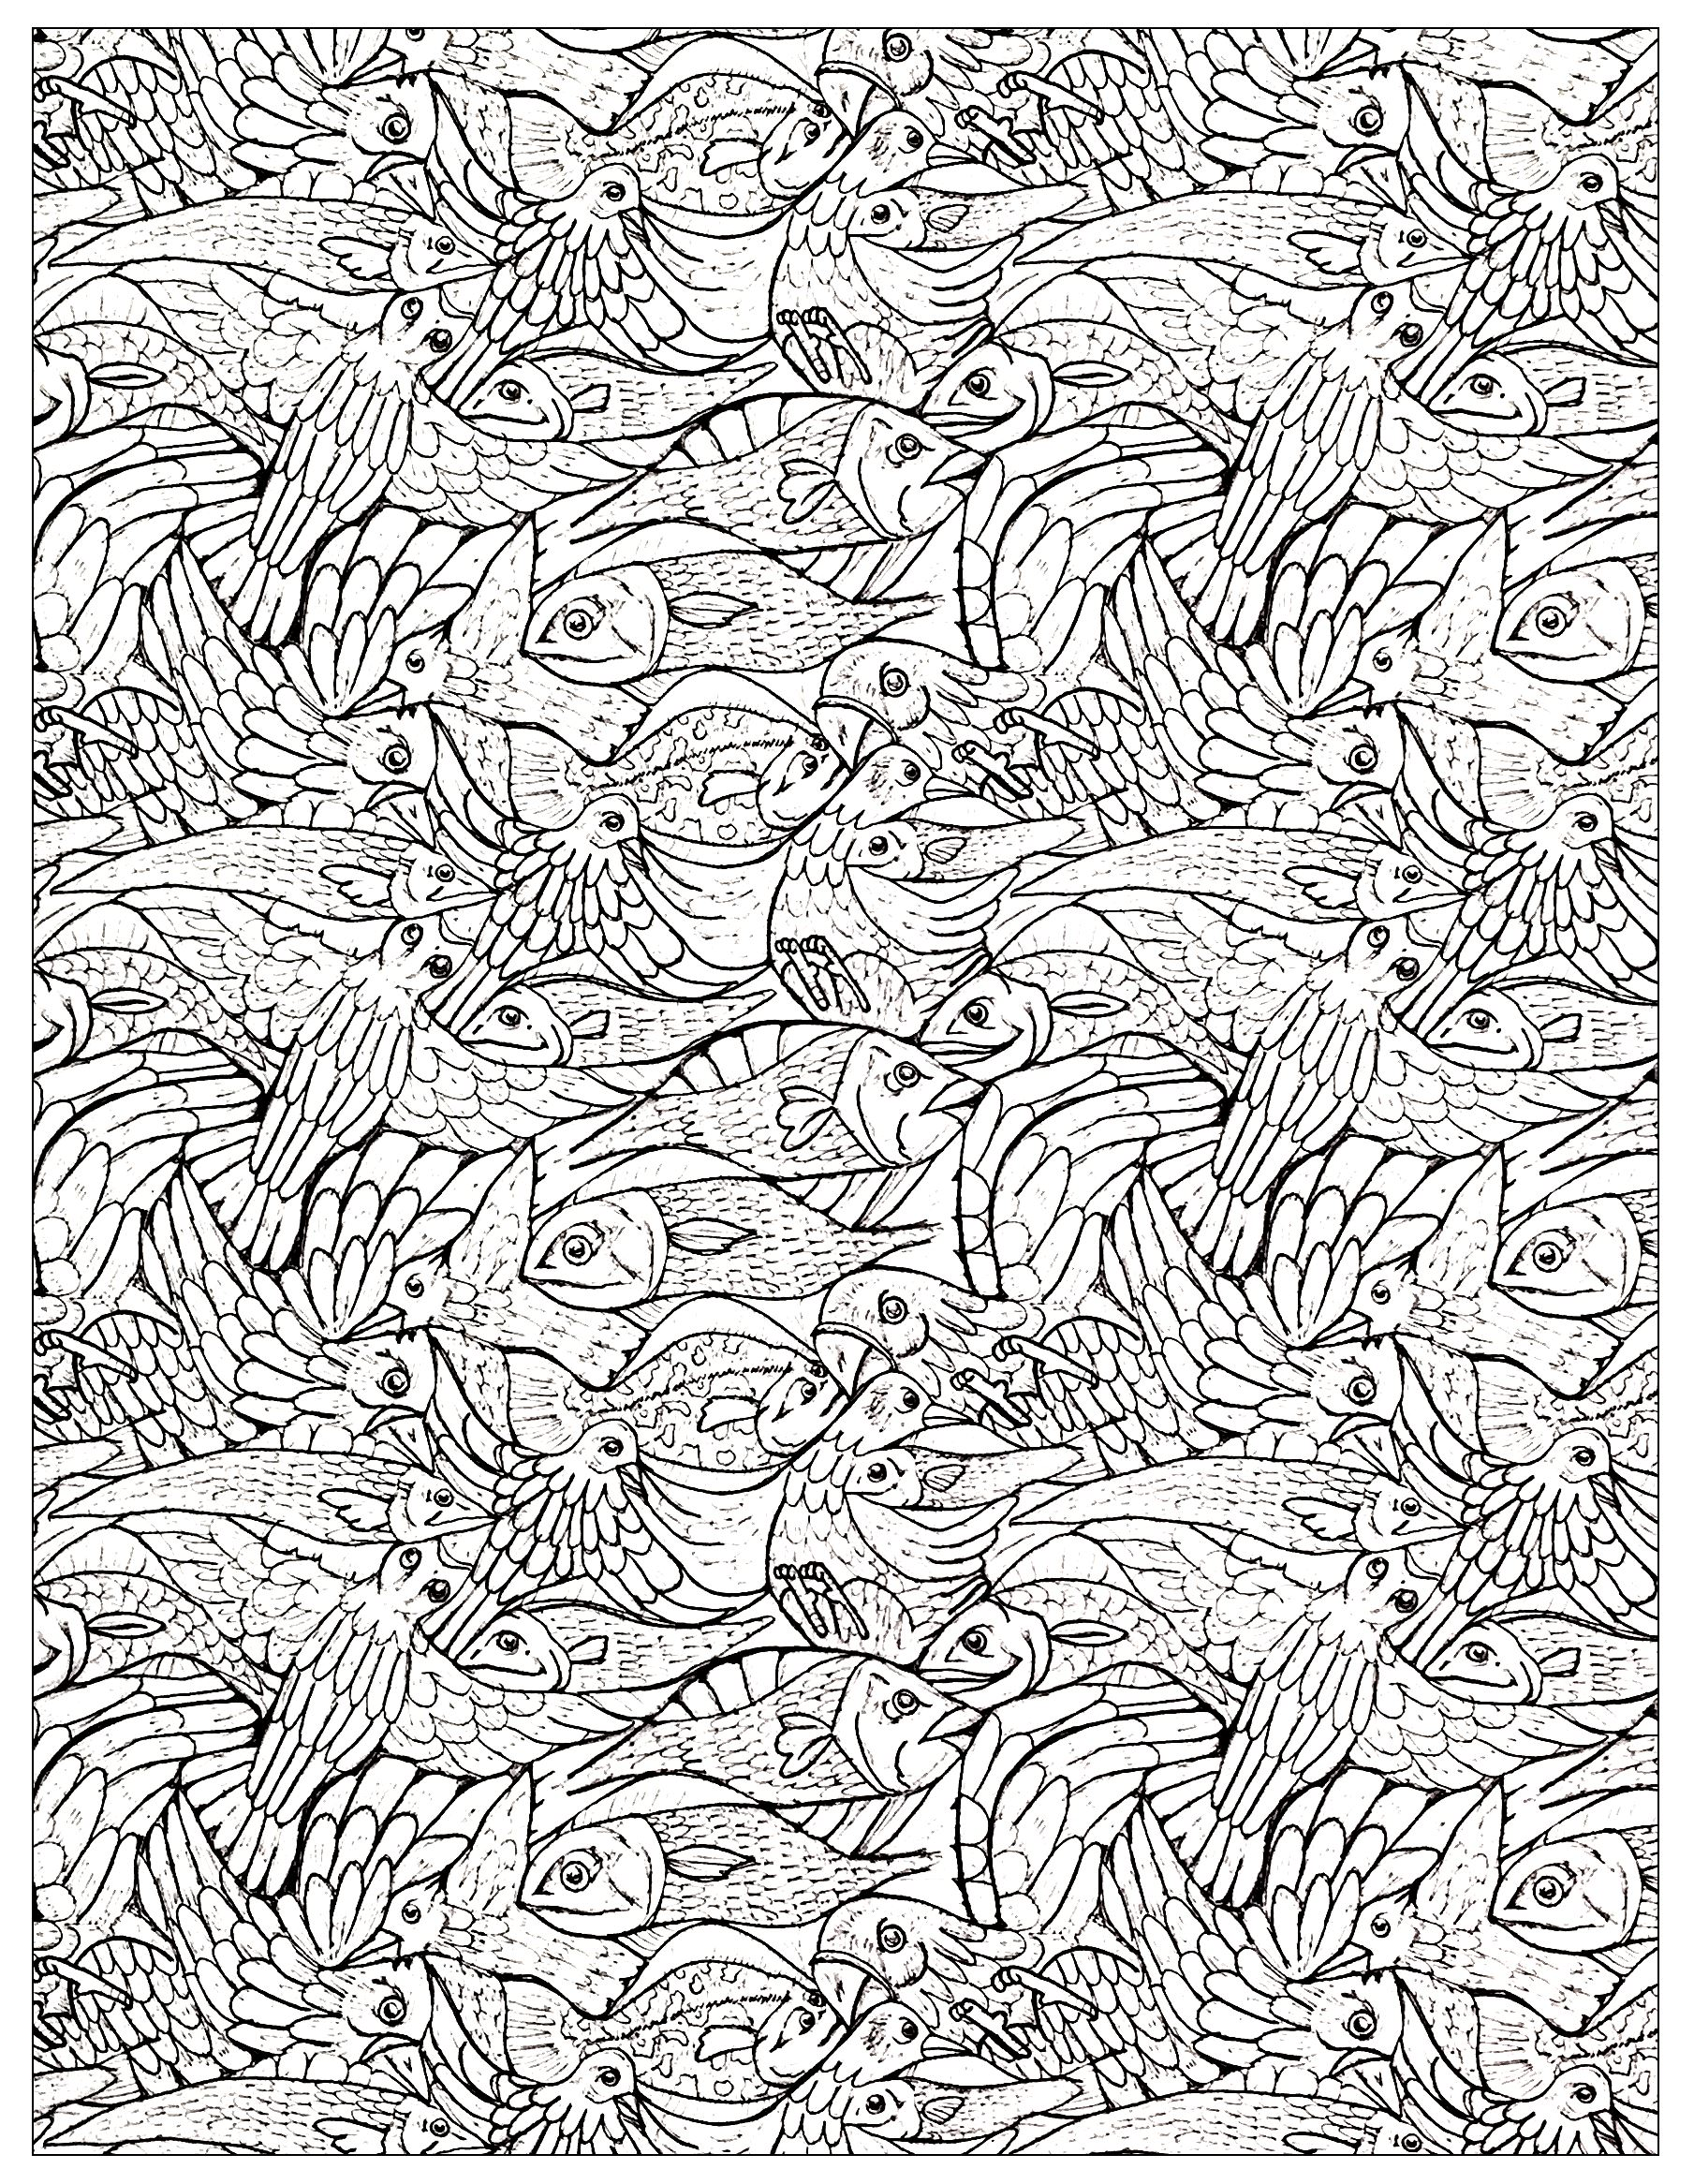 Plenty of fishes to color